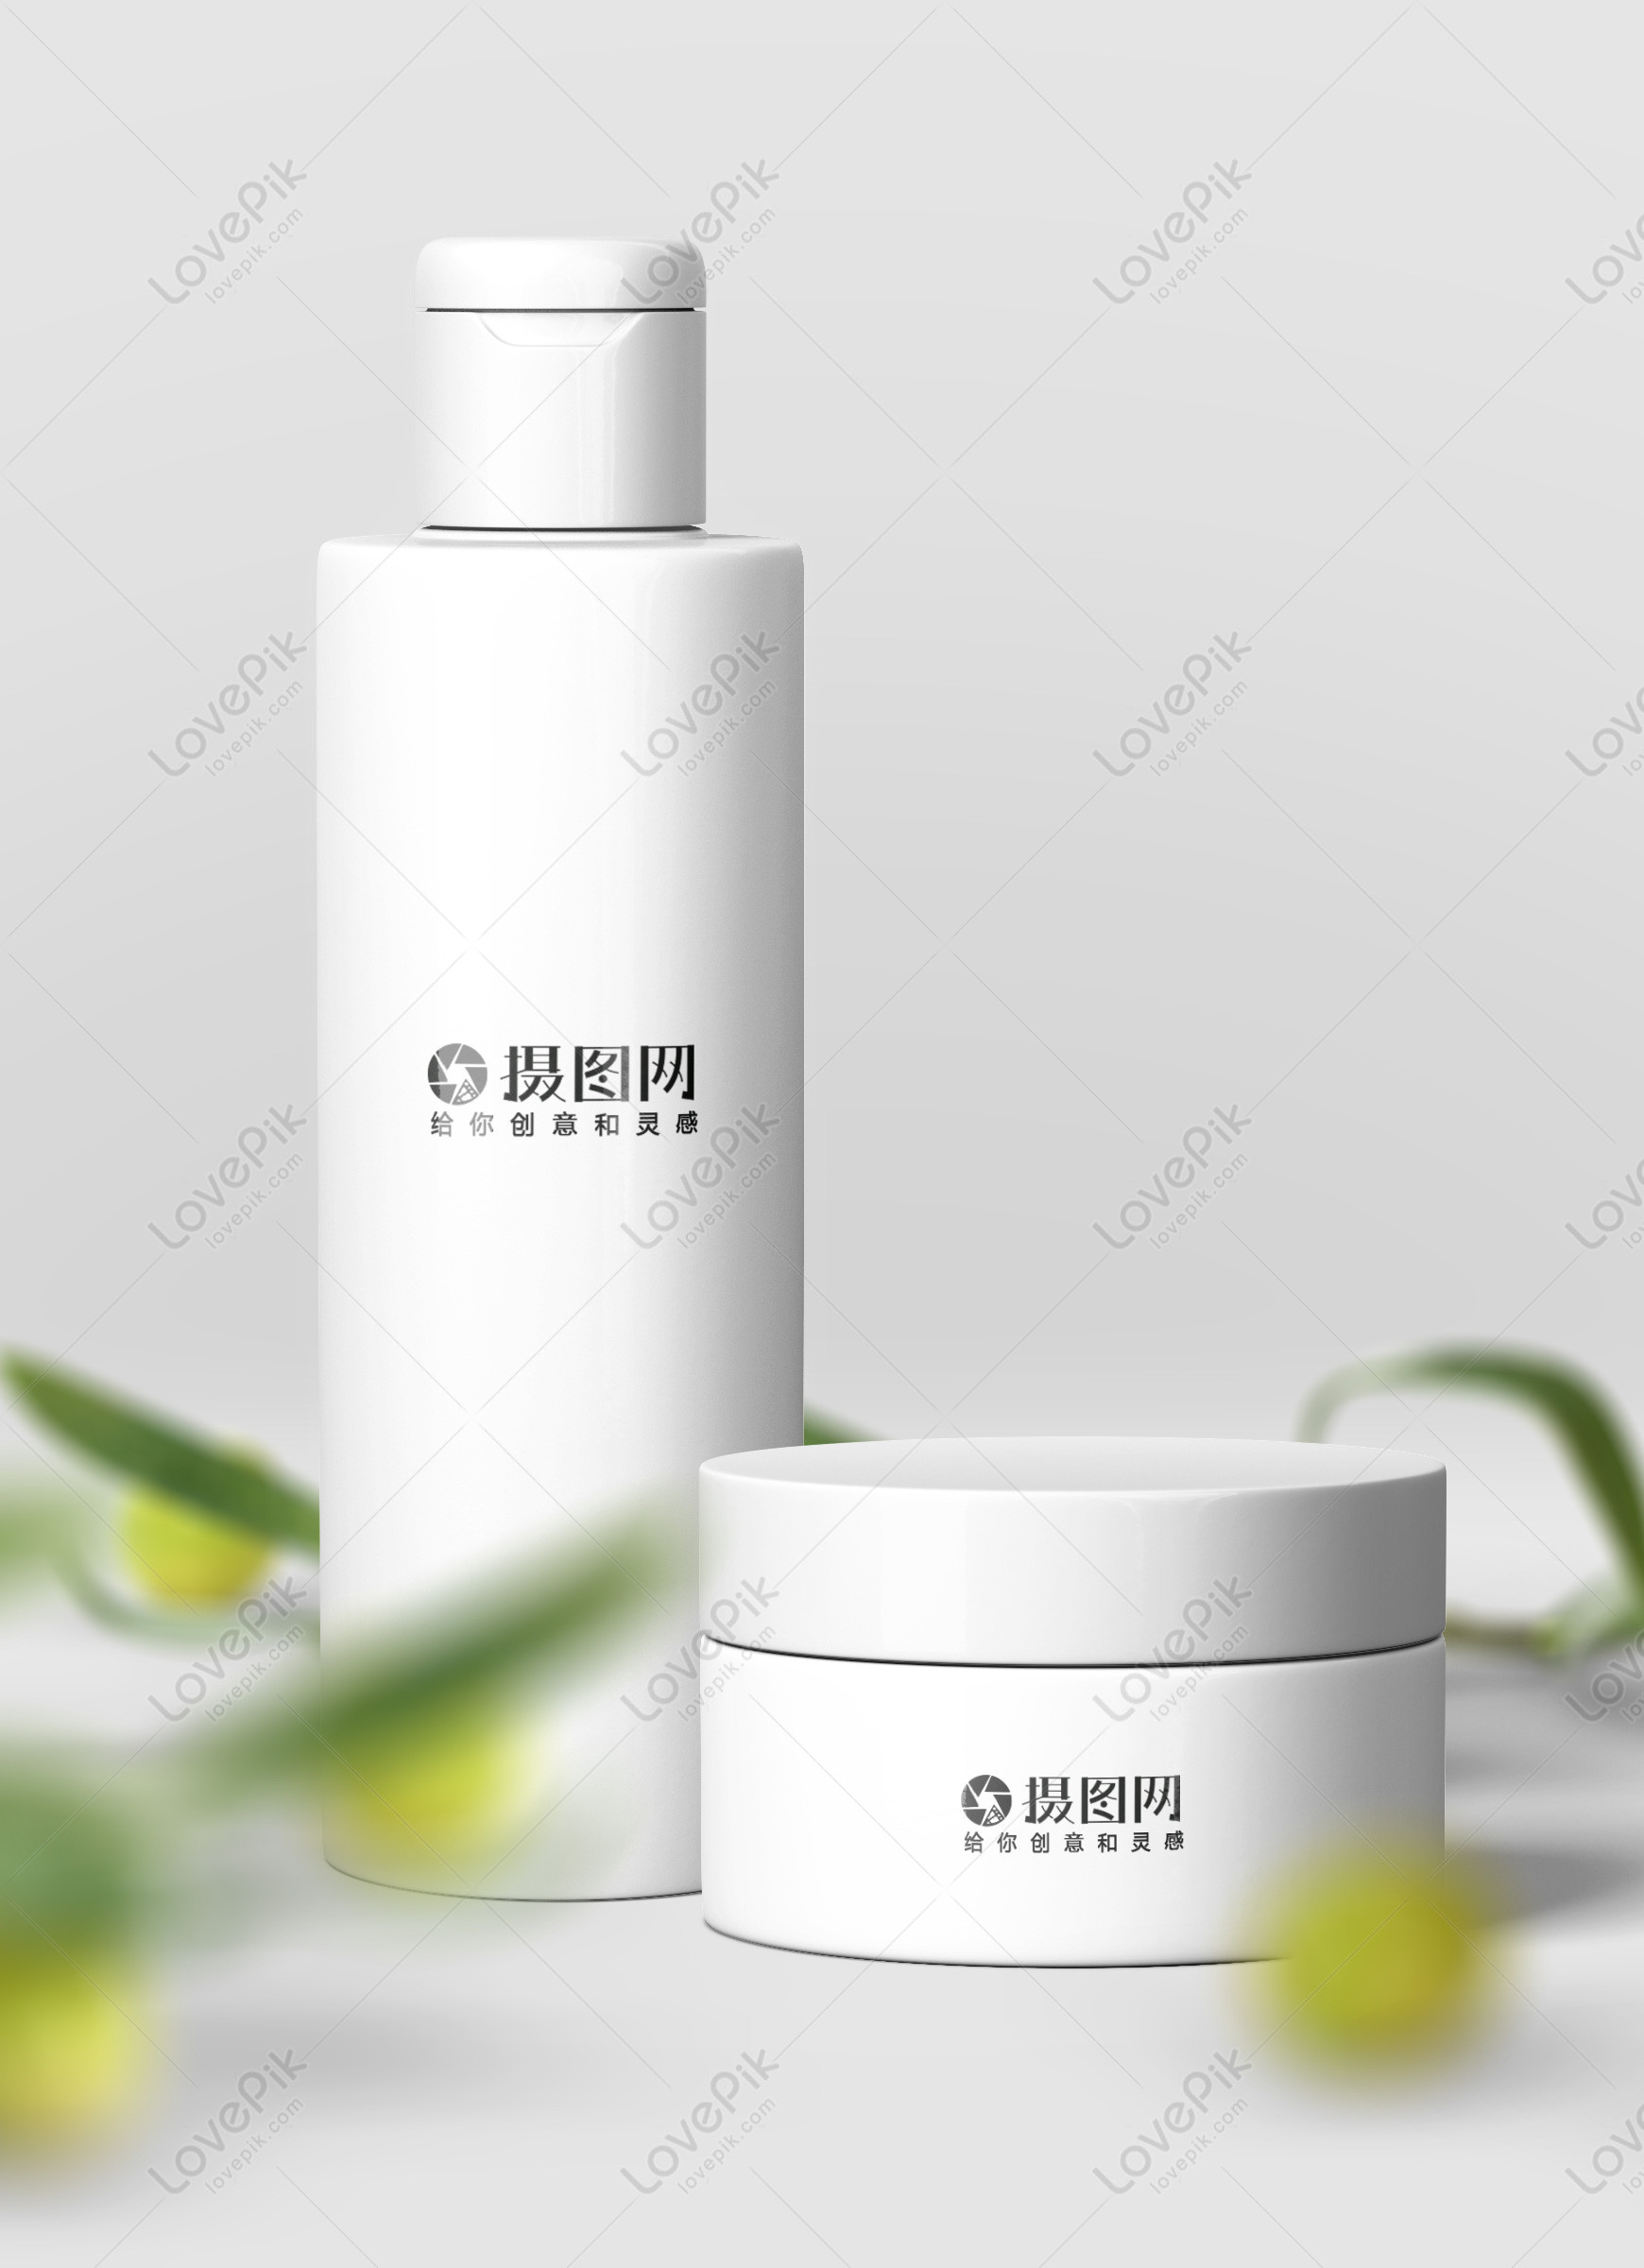 white cosmetic bottle mapping mockup template image picture free download 400825951 lovepik com